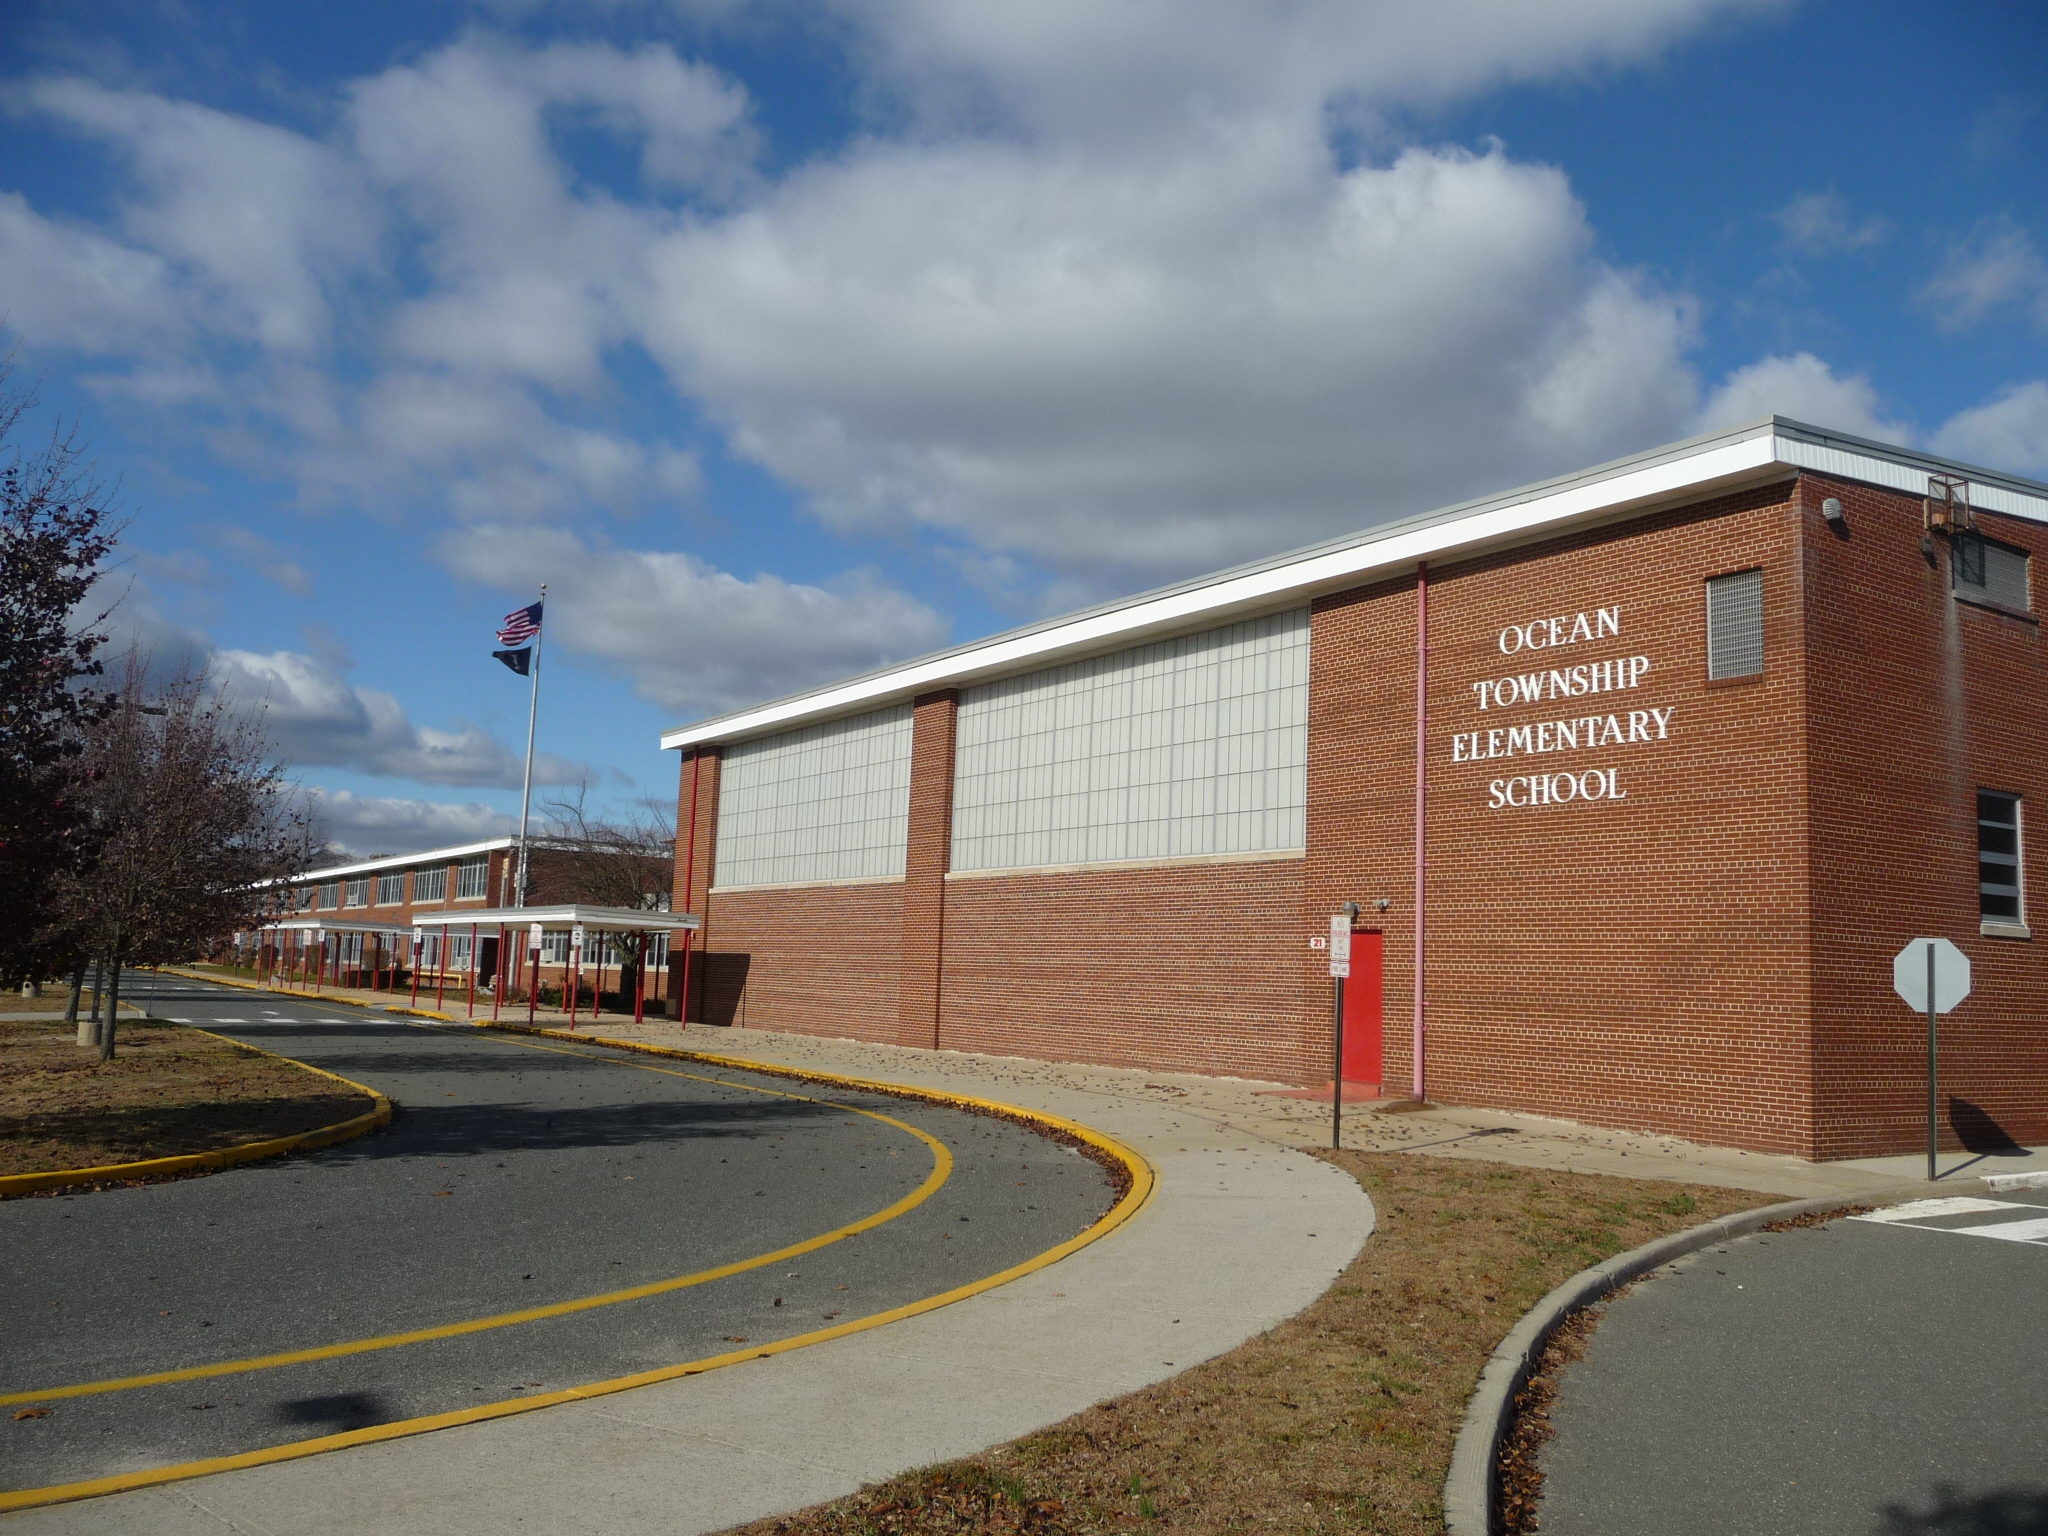 The Ocean Township Elementary School is on Dow Avenue in Oakhurst NJ